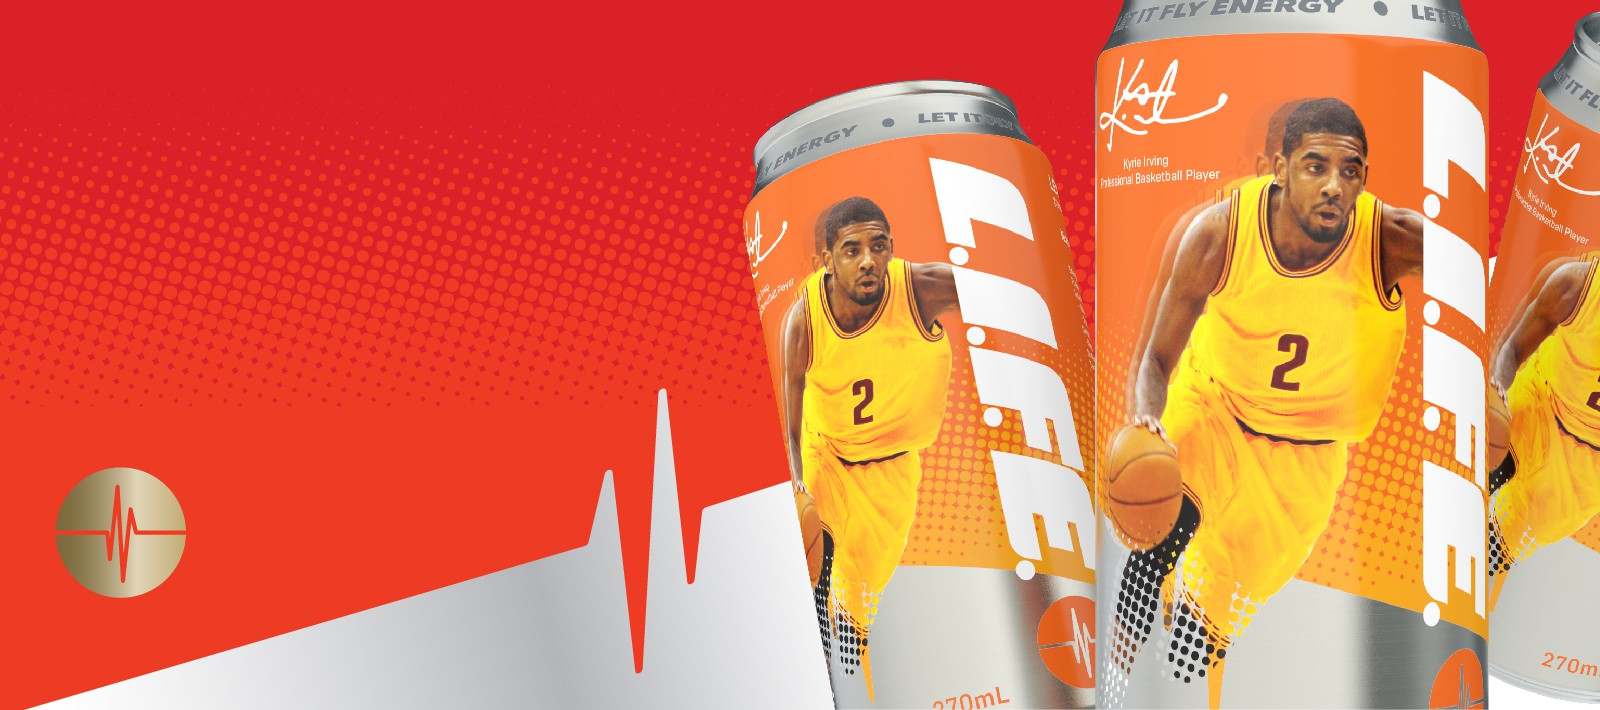 Brand strategy for an energy drink